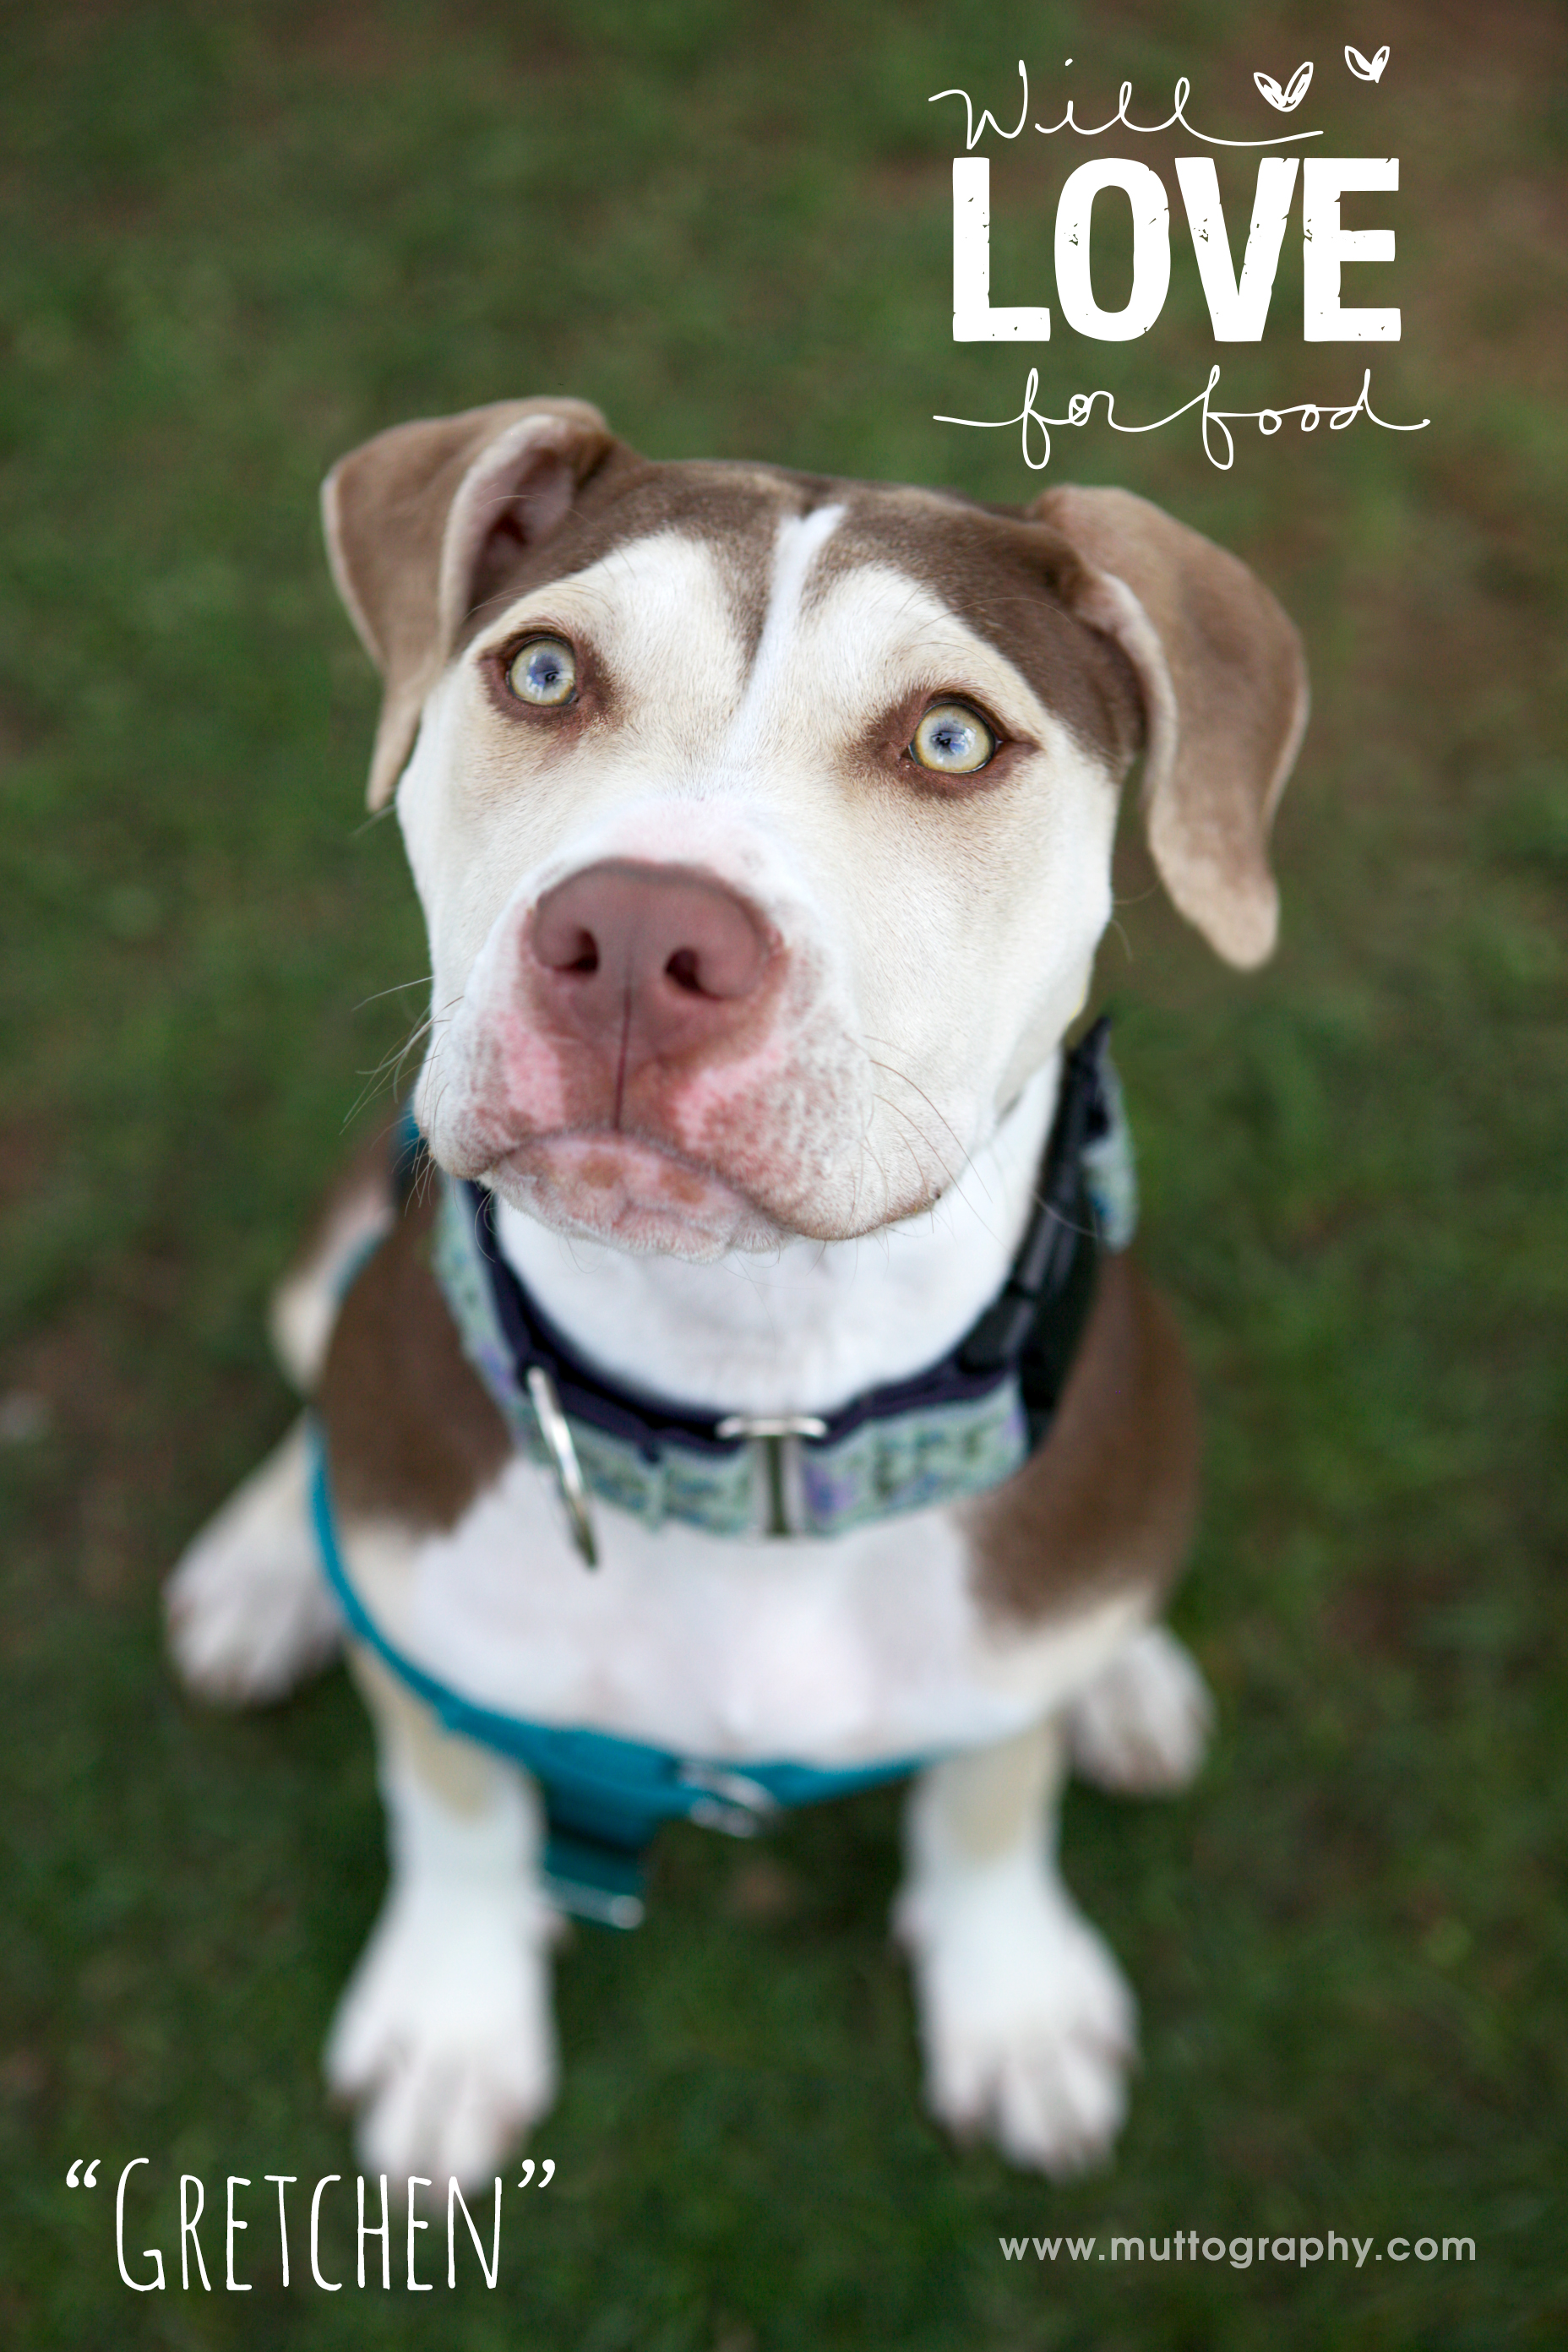 7 months old and looking for love in all the right places! For more info on Gretchen and our other available pups, please go to our   adoptable   page. This beautiful photo courtesy of   Muttography  .